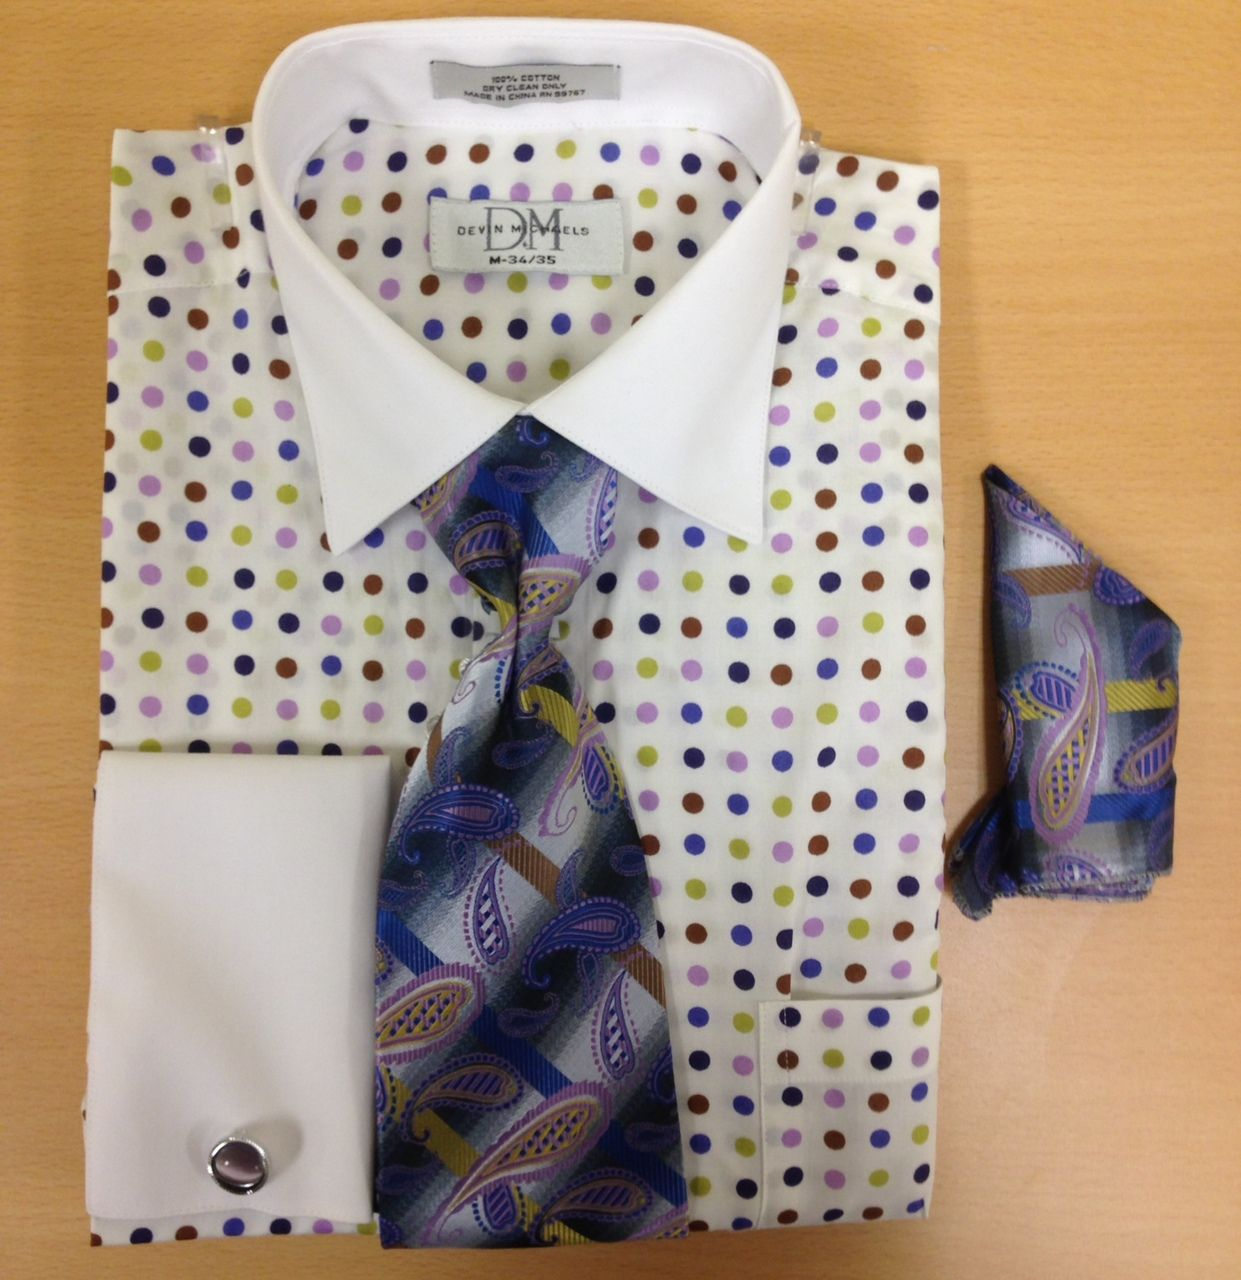 Men's Fashion Polka Dot Cufflink Dress Shirt Set - White/Lilac/Blue